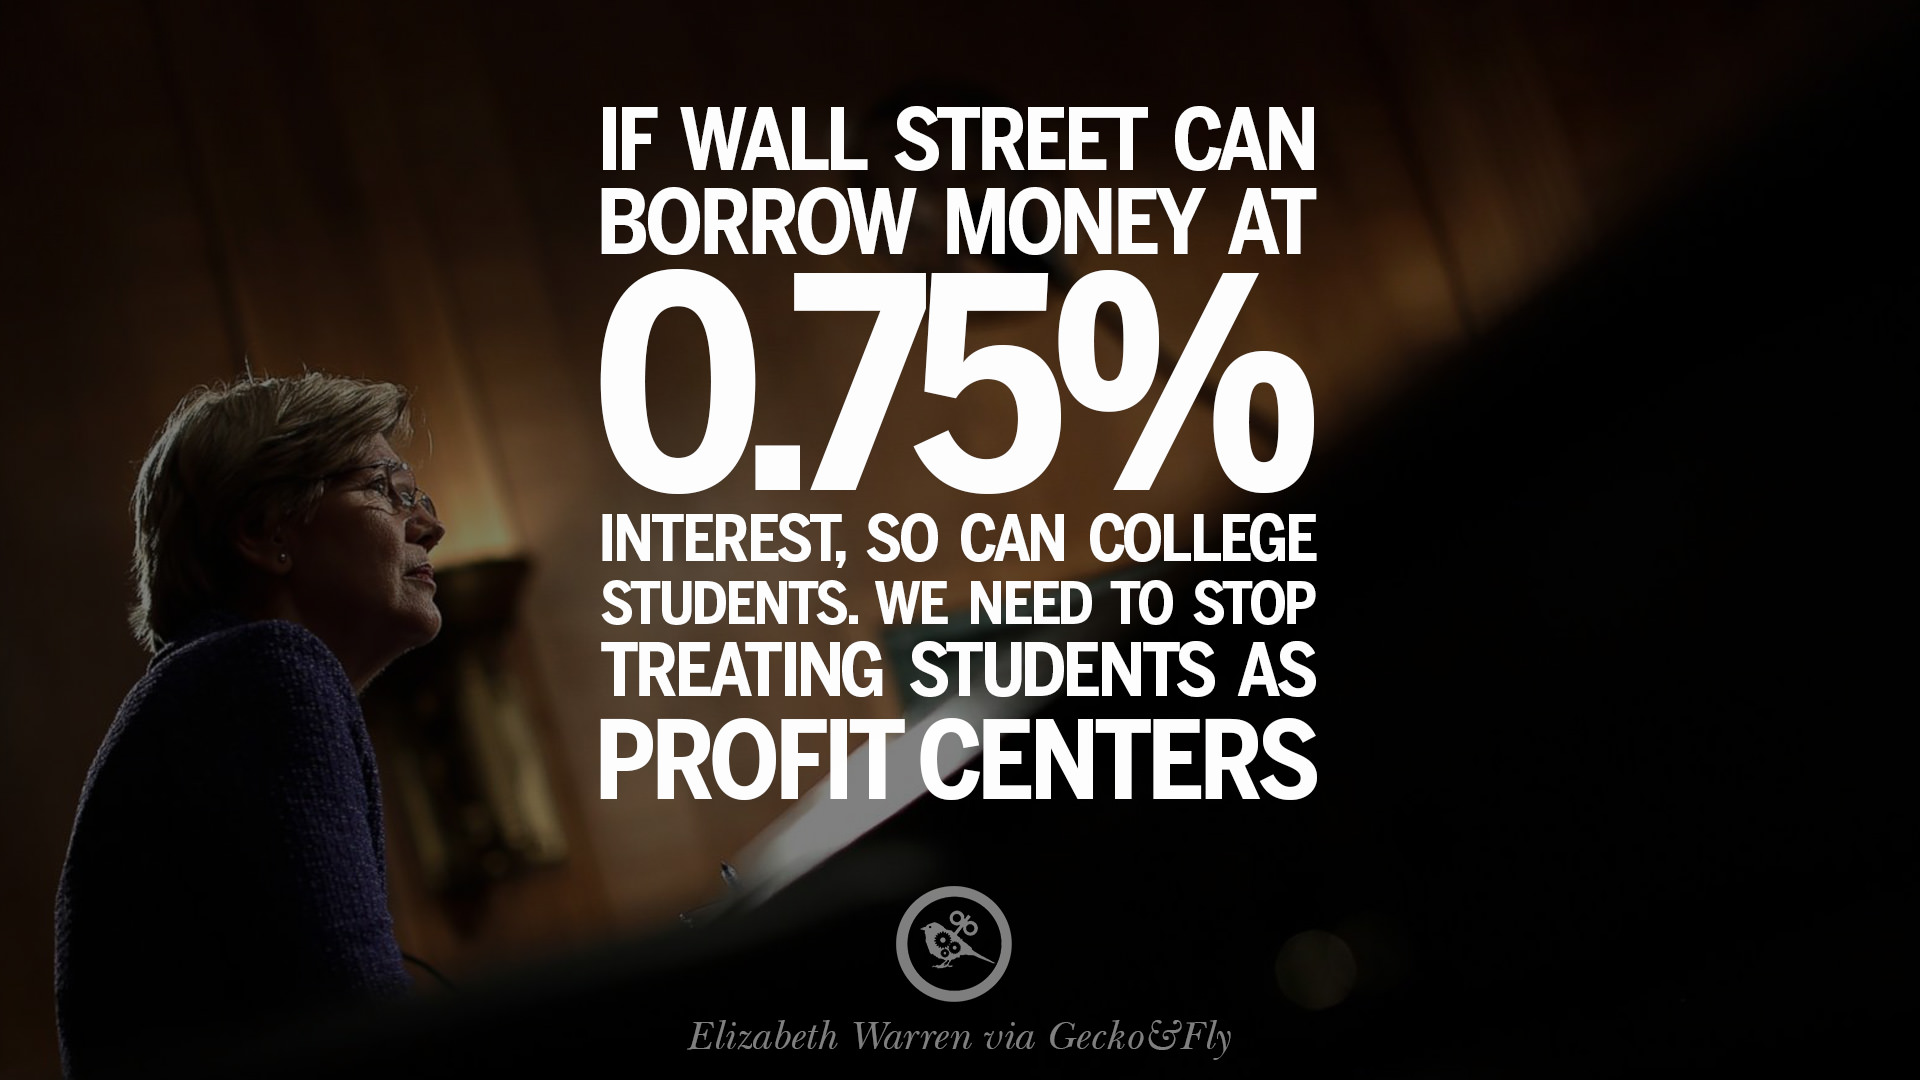 student-loans-education-debt-quotes-06.jpg